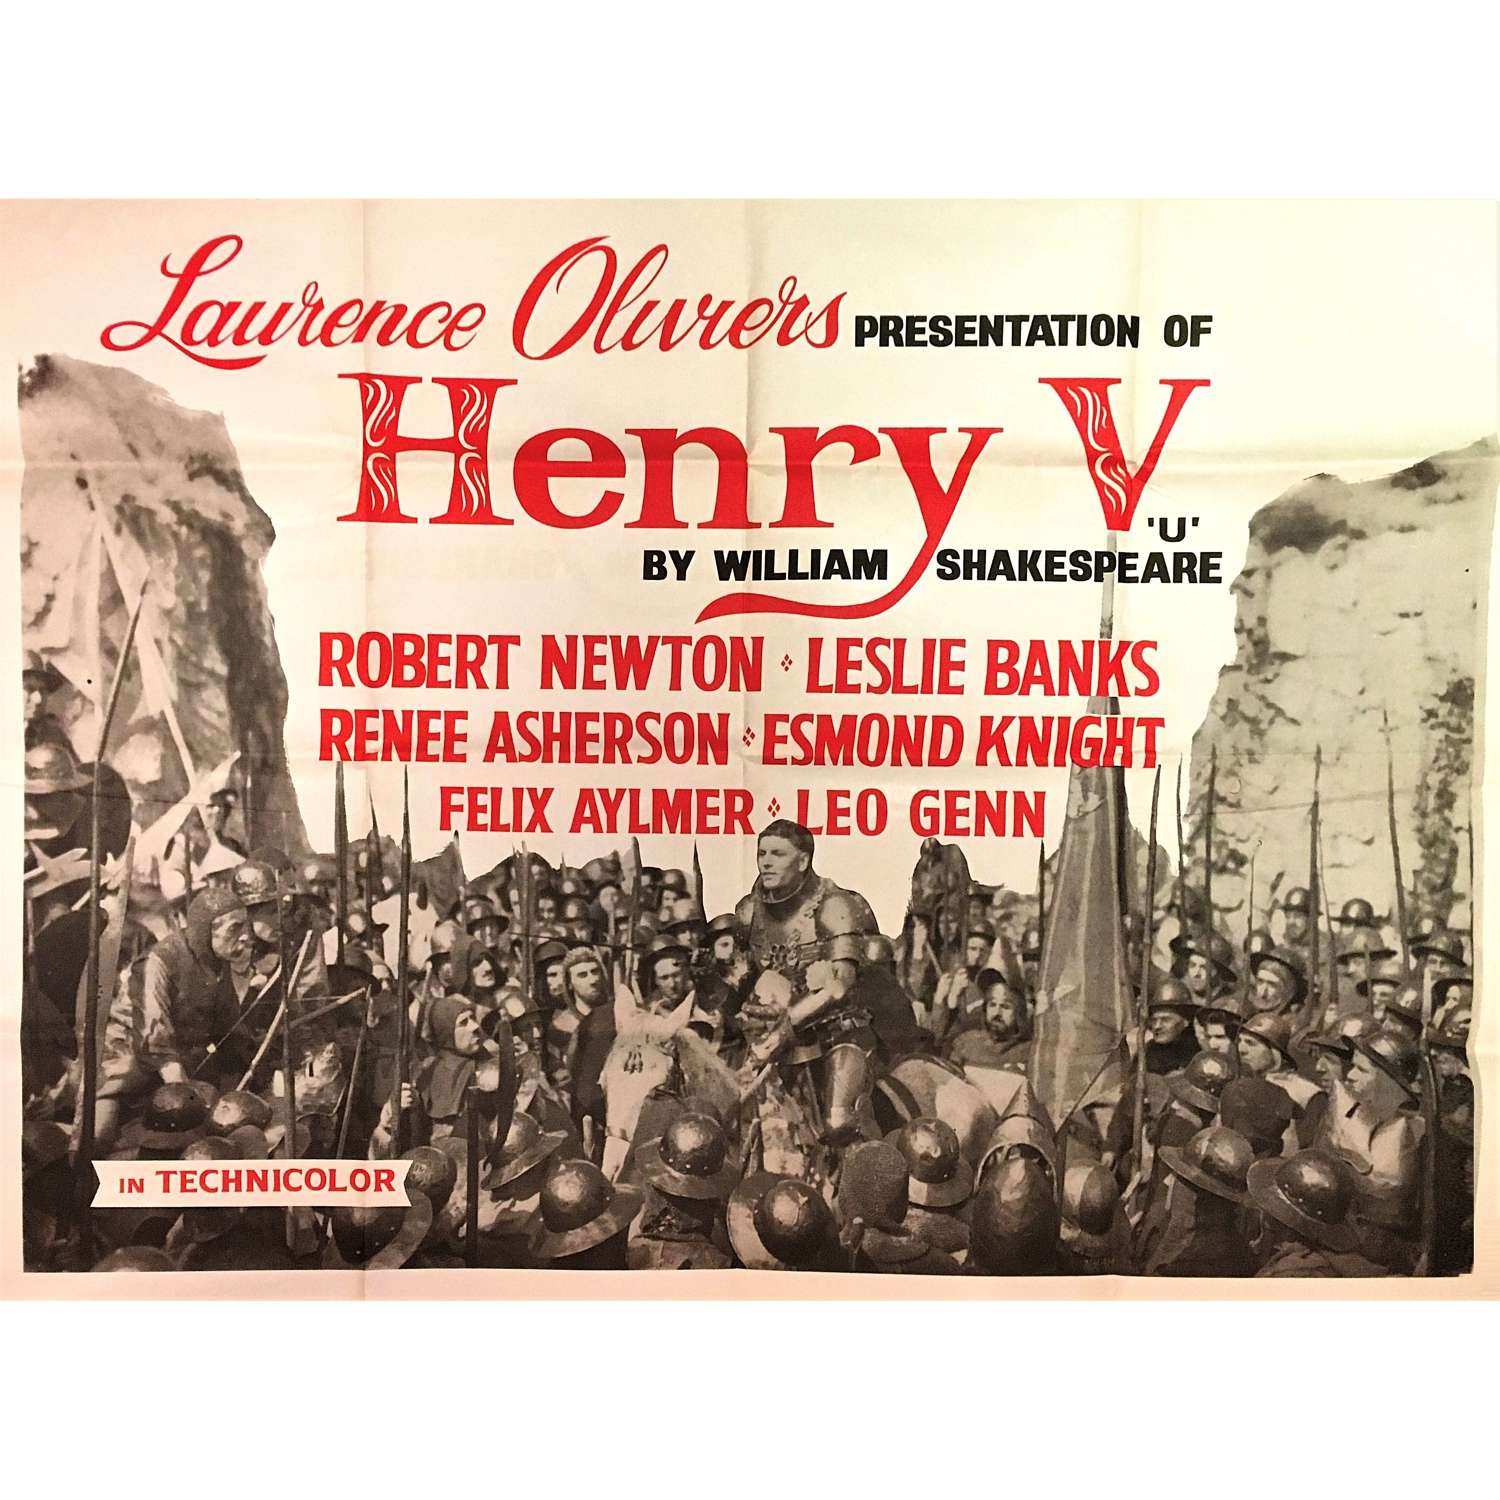 Laurence Olivier's epic movie of William Shakespeare's